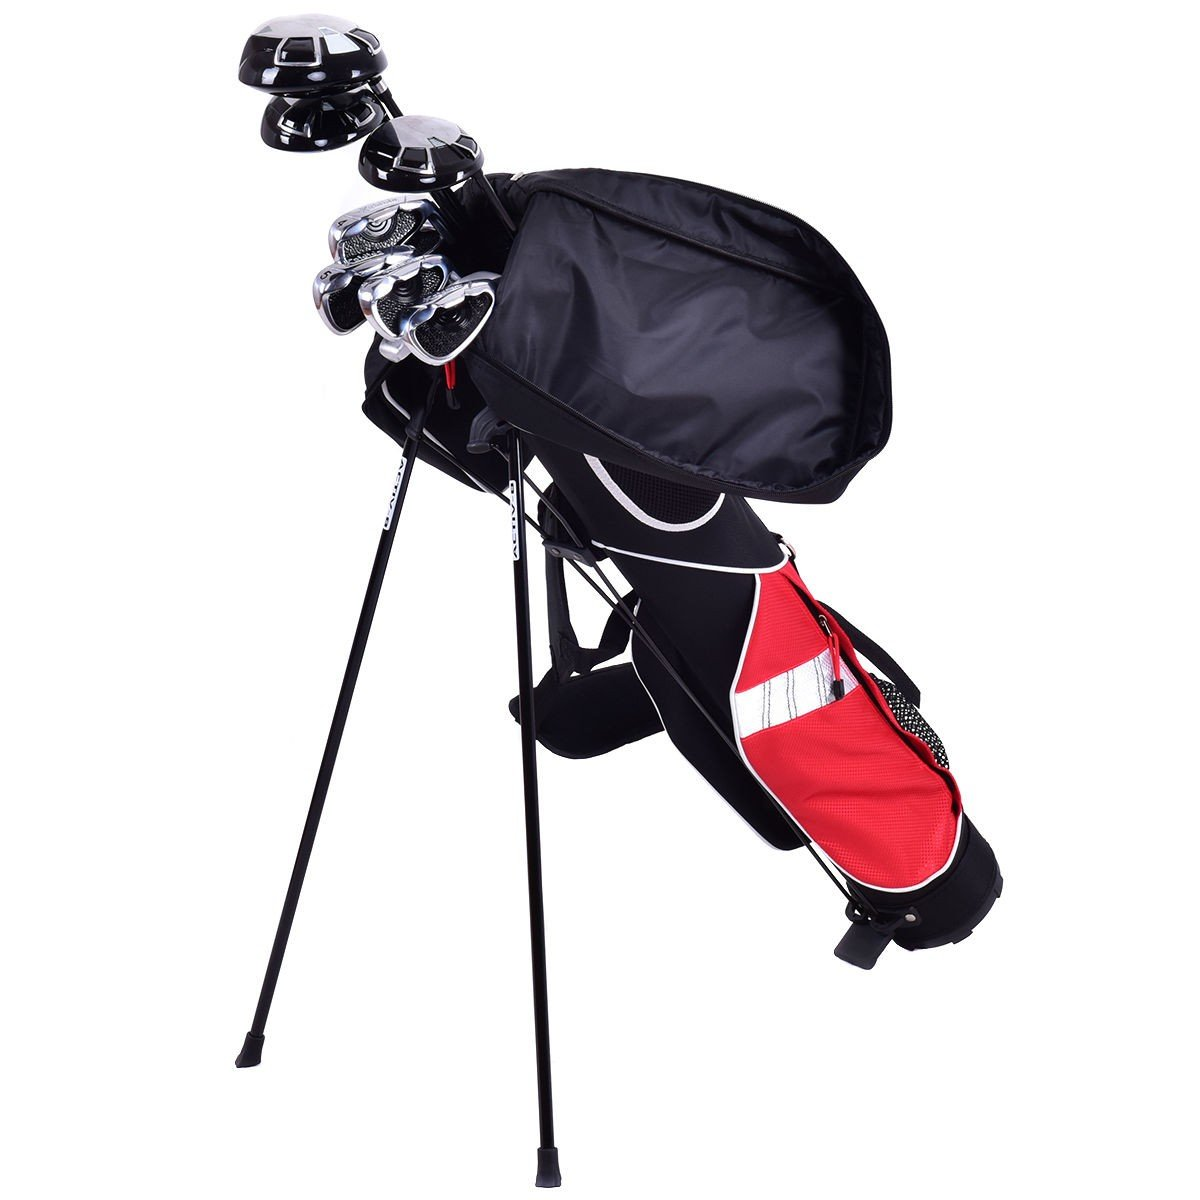 5'' Sunday Golf Bag Stand 7 Clubs Carry Pockets - By Choice Products by By Choice Products (Image #4)